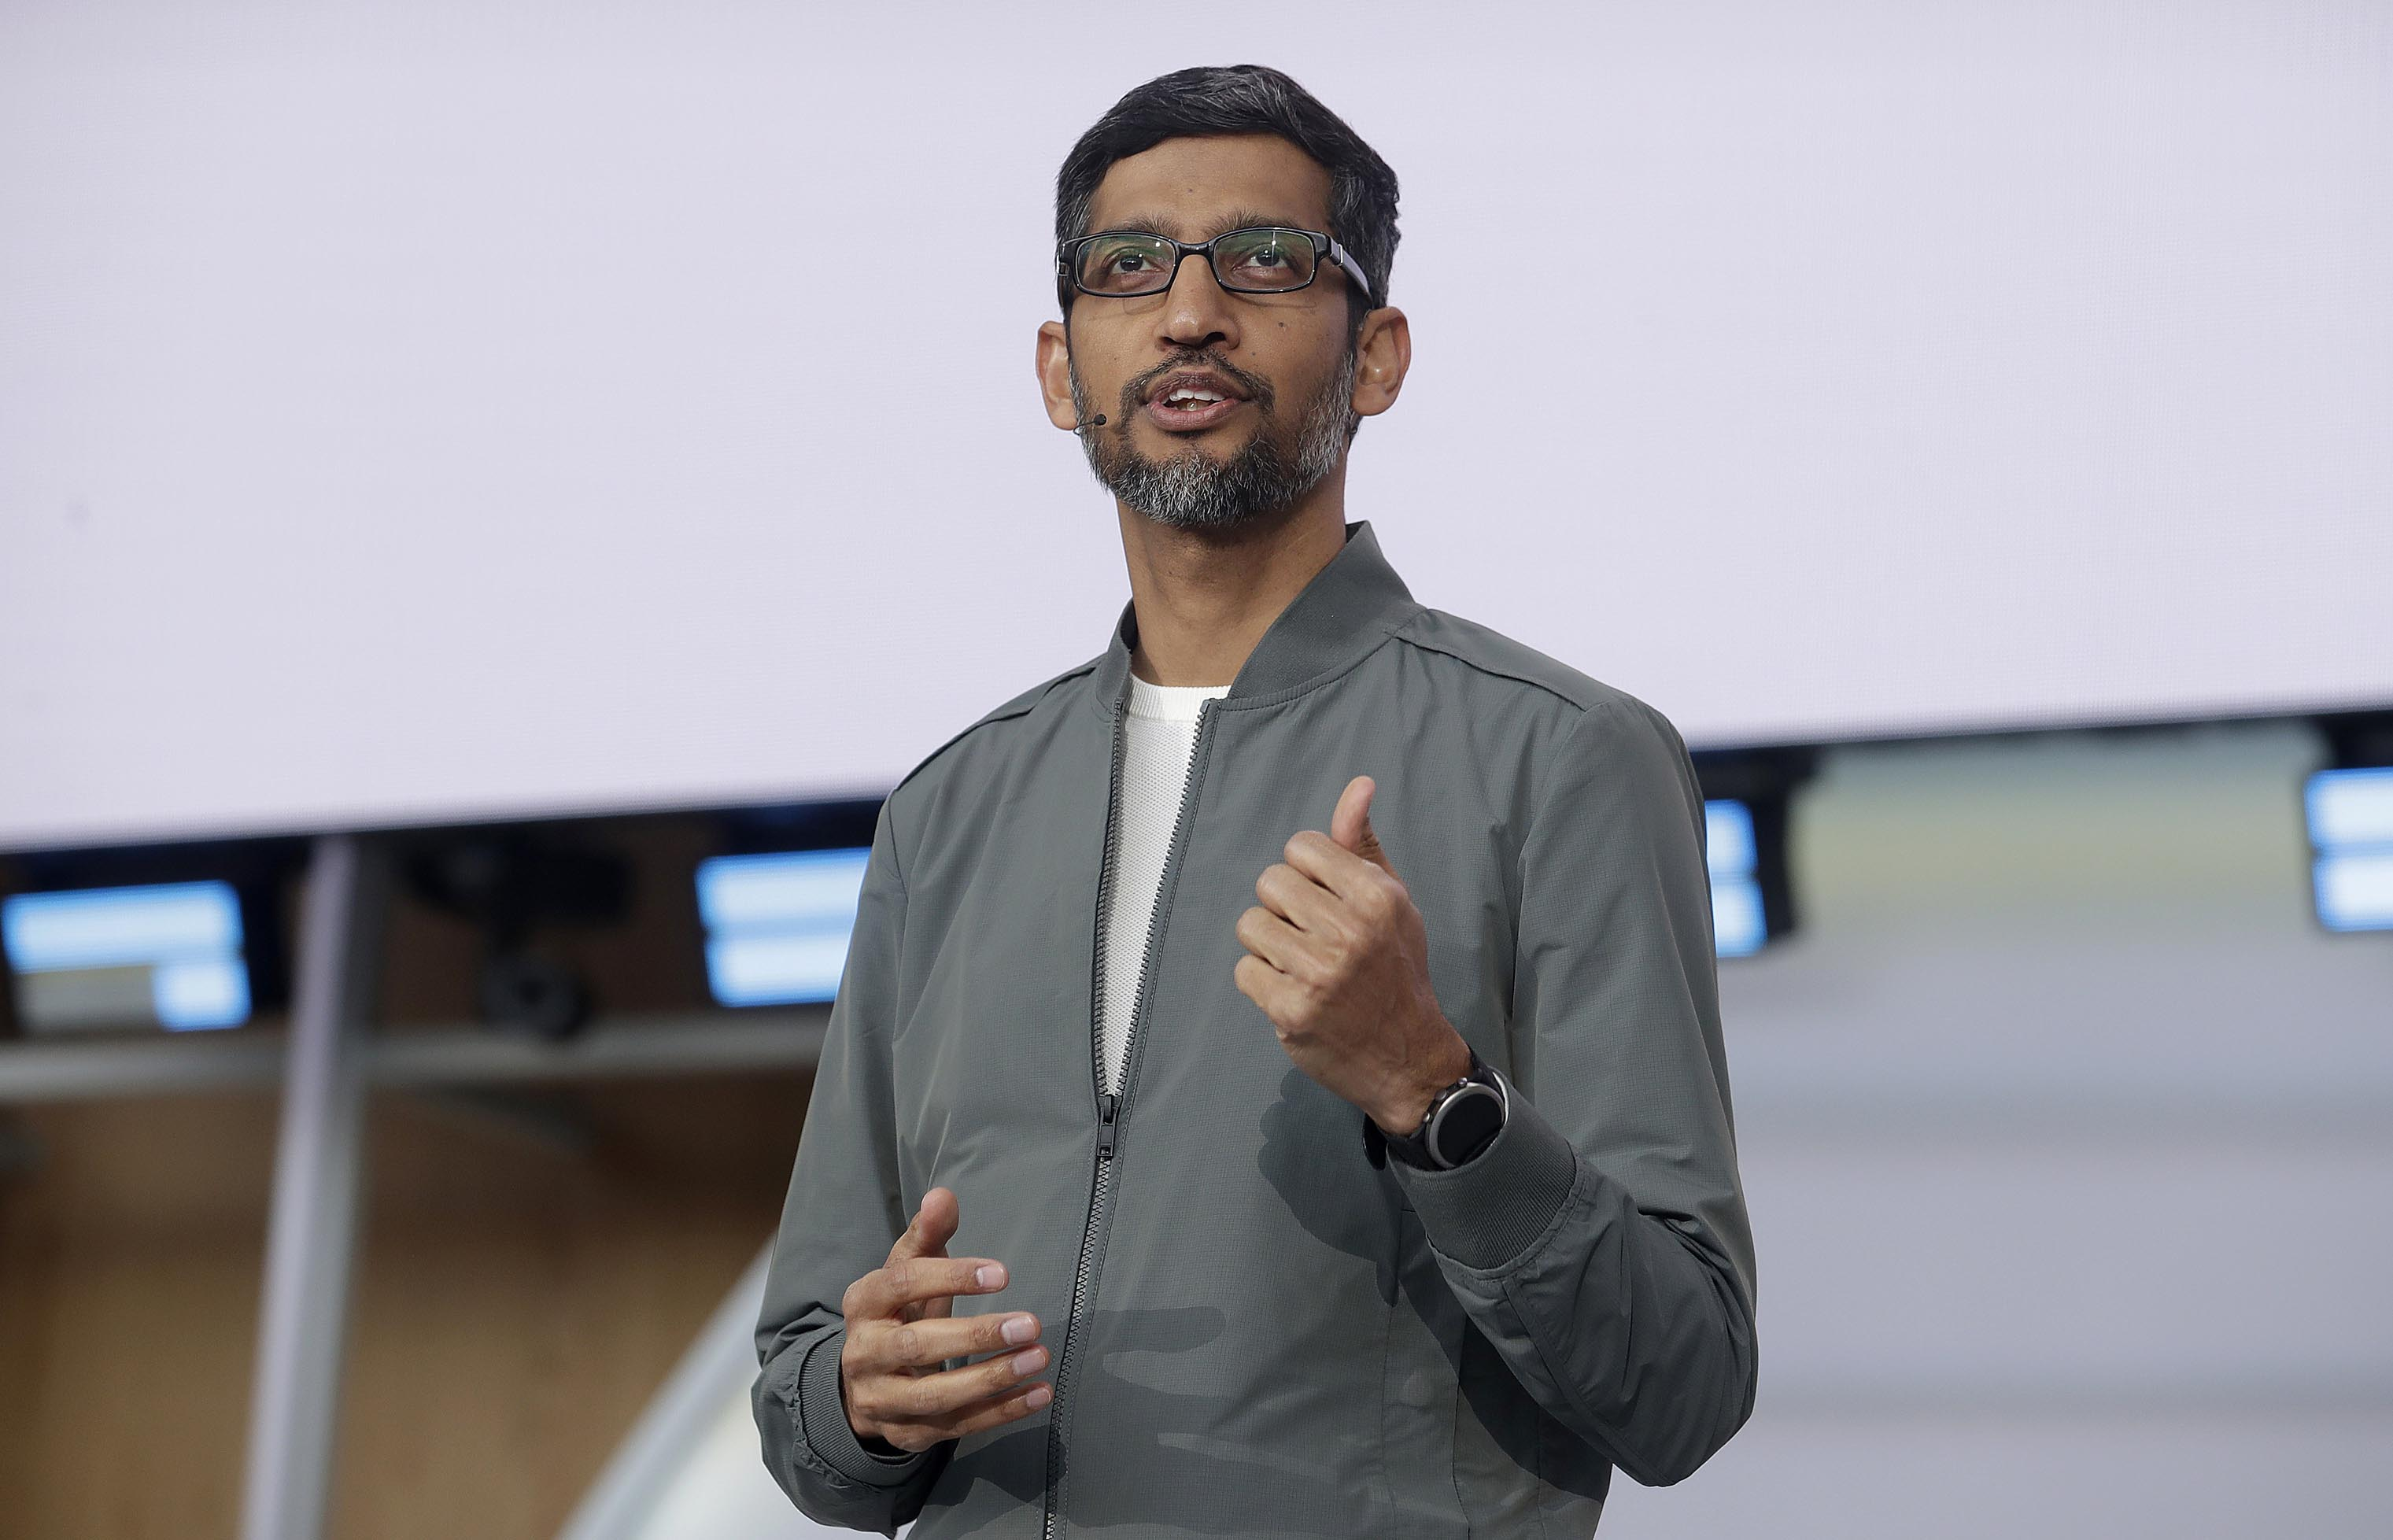 Google CEO Sundar Pichai speaks during the keynote address of the Google I/O conference in Mountain View, California, Tuesday, May 7, 2019. Photo: AP